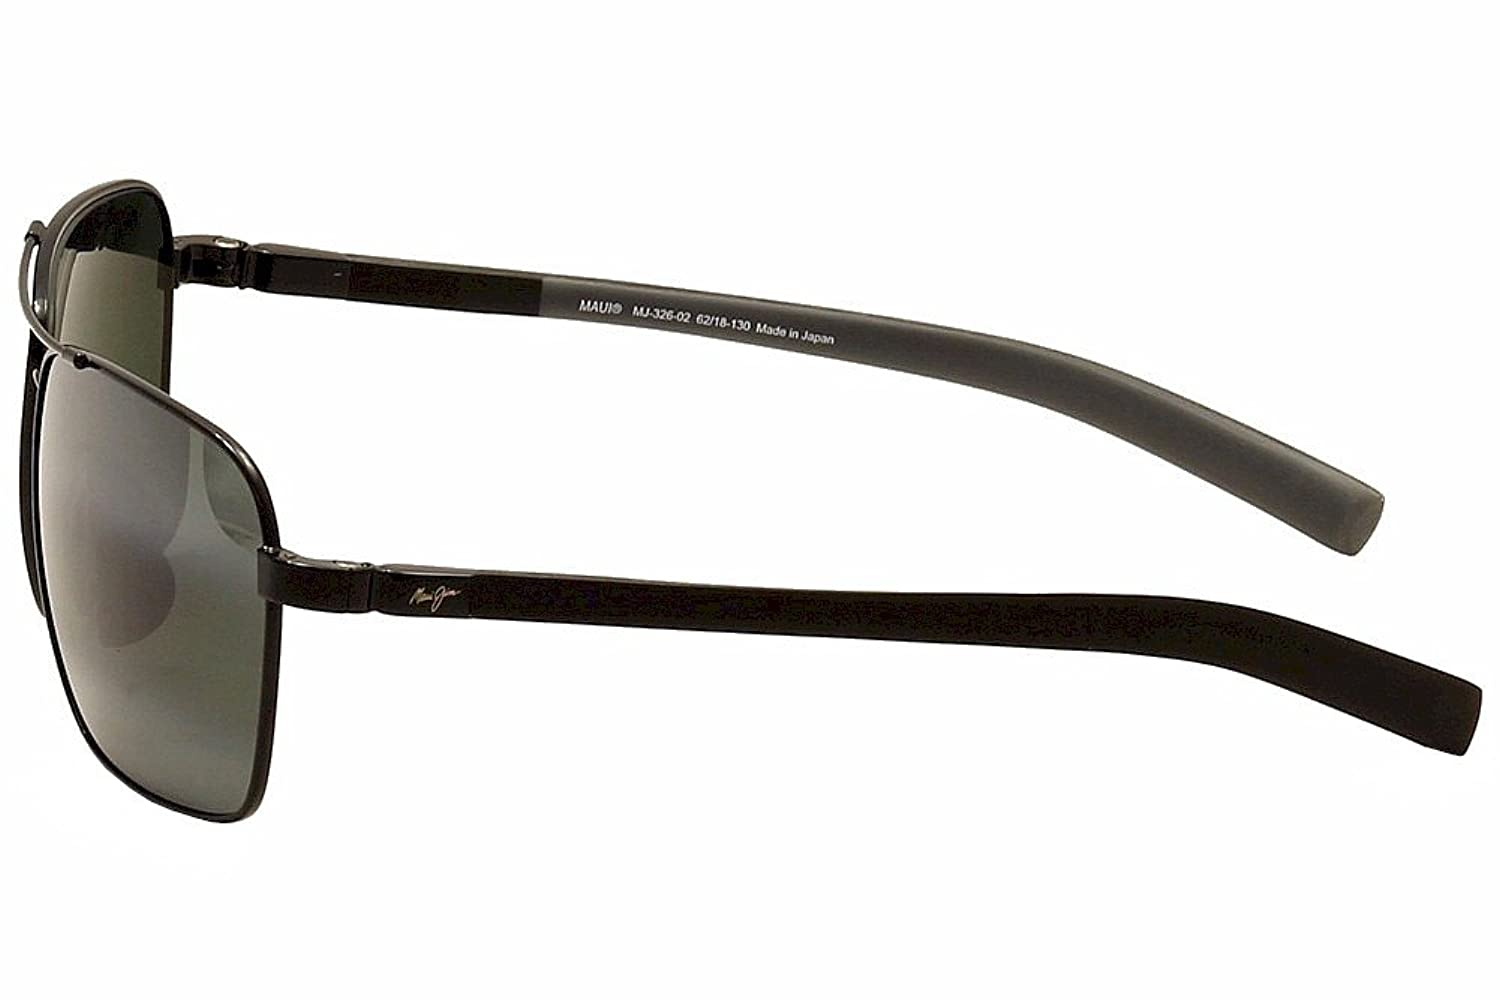 eaa5e3fba0b Amazon.com  Maui Jim Freight Trains 326-02 Polarized Rectangular Aviator  Sunglasses